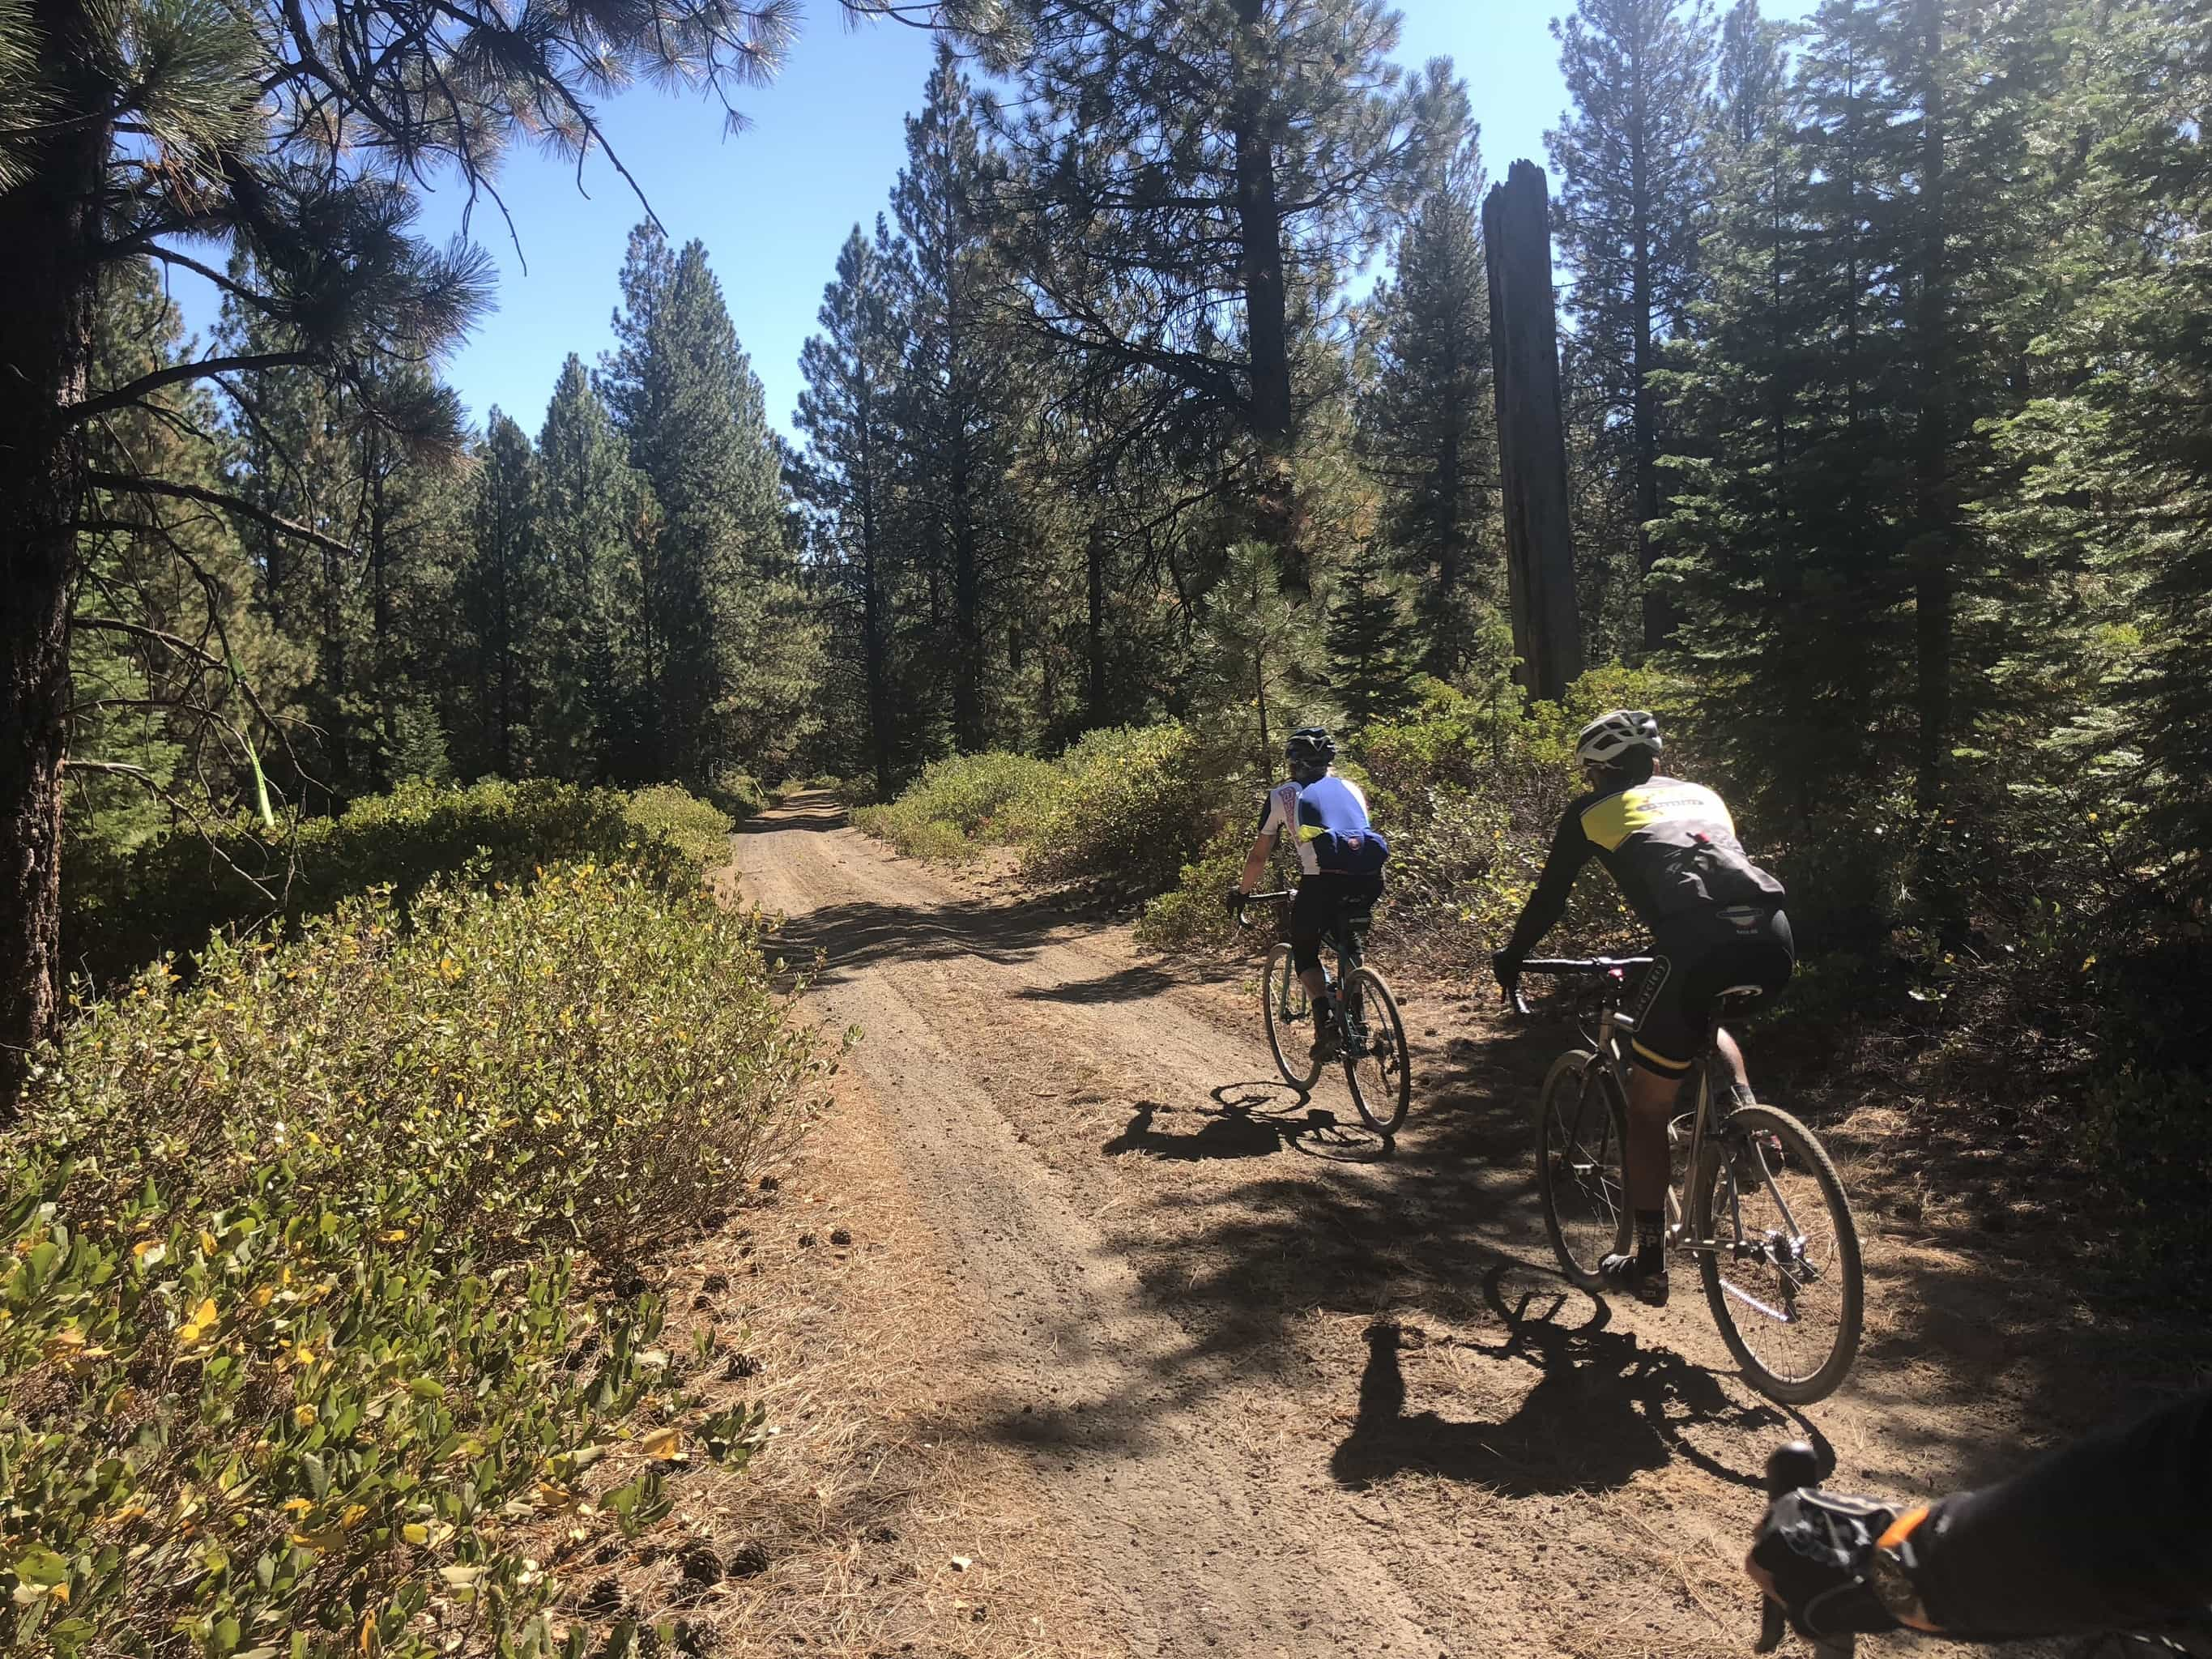 Gravel cyclists on primitive forest service dirt road.